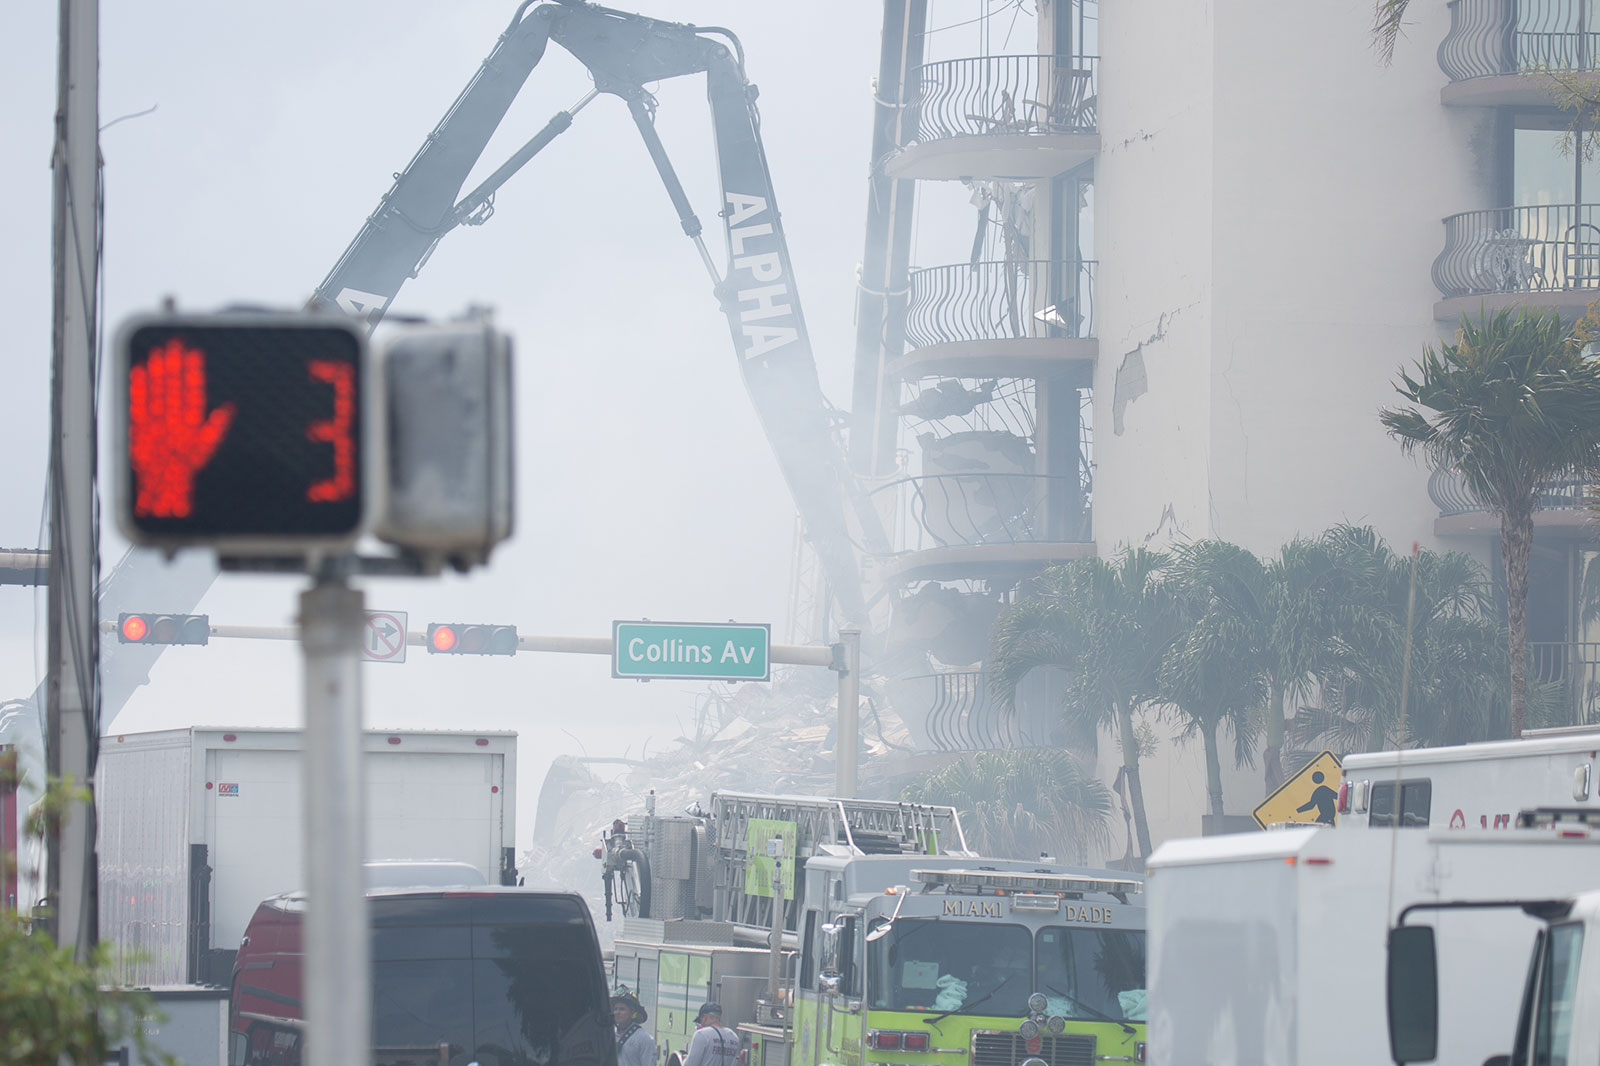 Champlain Towers, Surfside, Florida. Photo by Key Biscayne Independent/Tony Winton